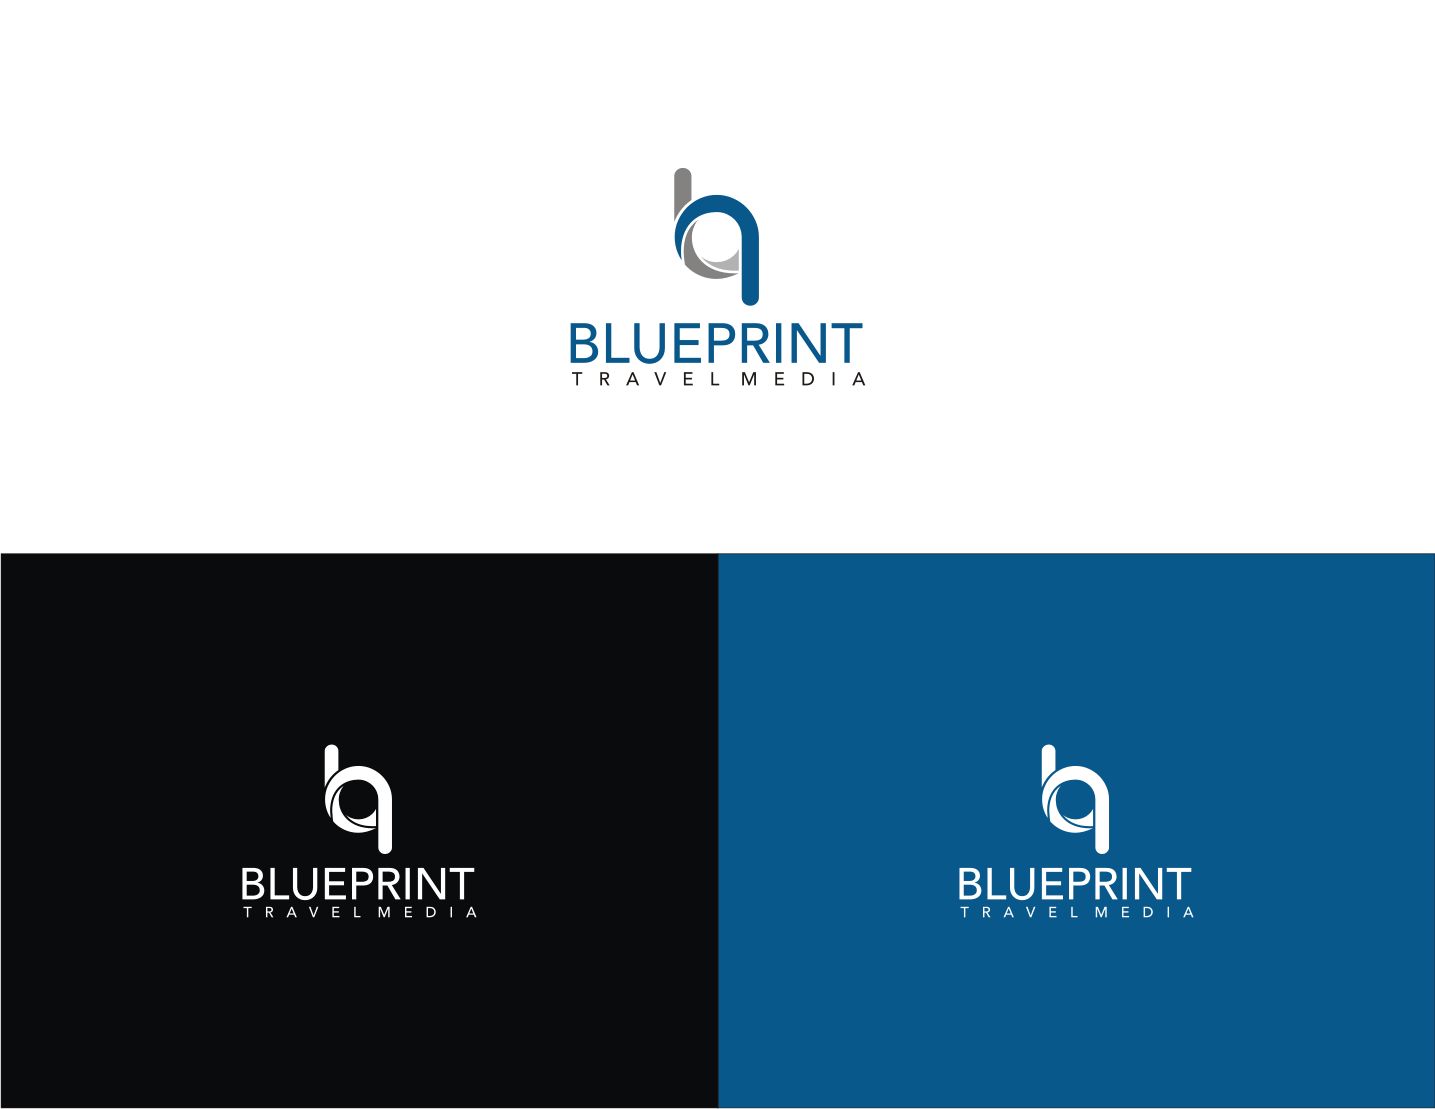 Playful professional logo design for blueprint travel media by onie logo design by onie for revamp of company logo for a tourism design agency publishing malvernweather Gallery